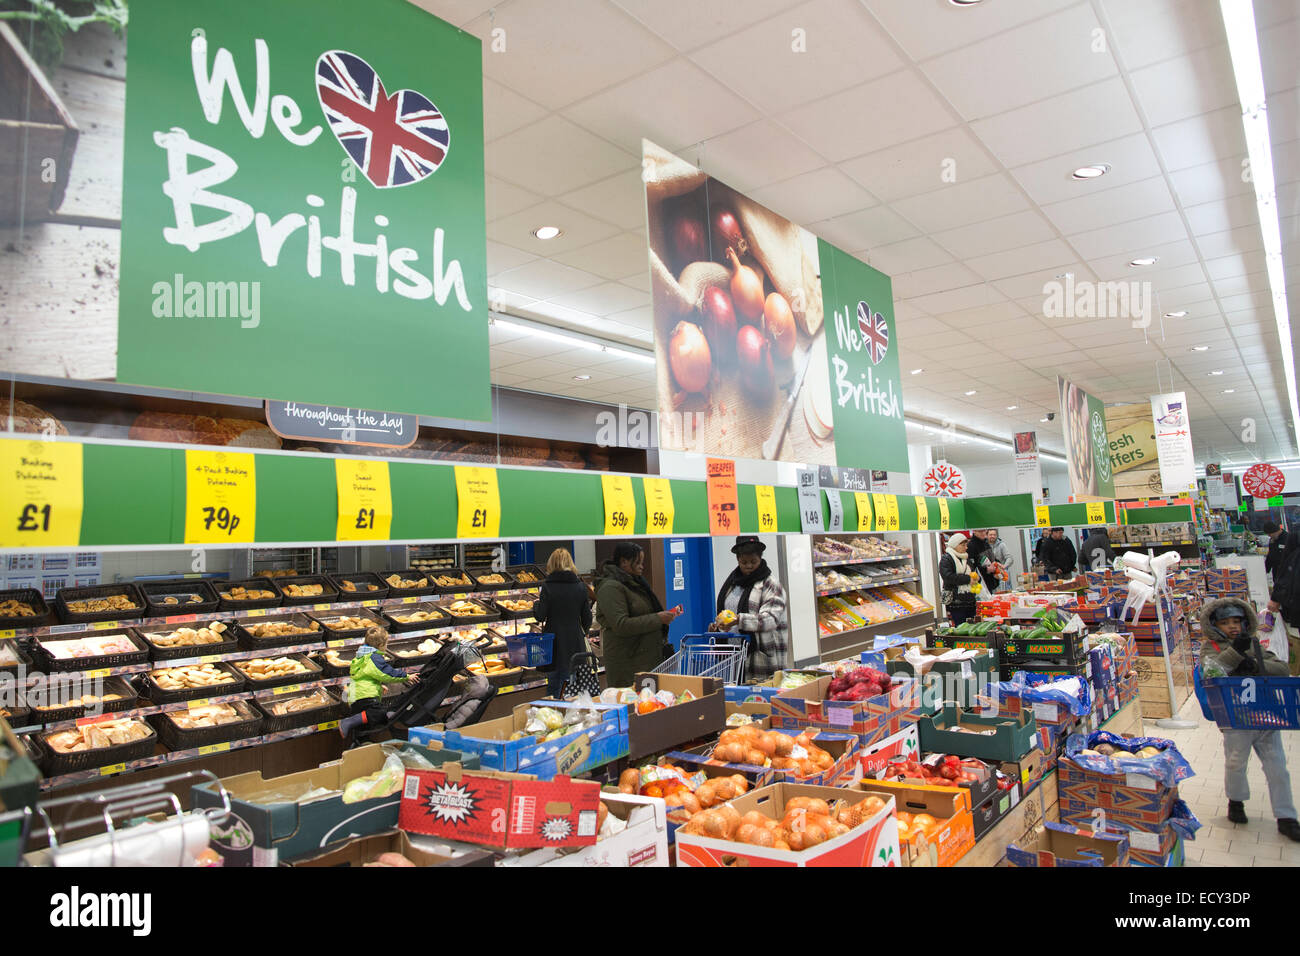 Shoppers buying food essentials in Lidl supermarket, UK - Stock Image